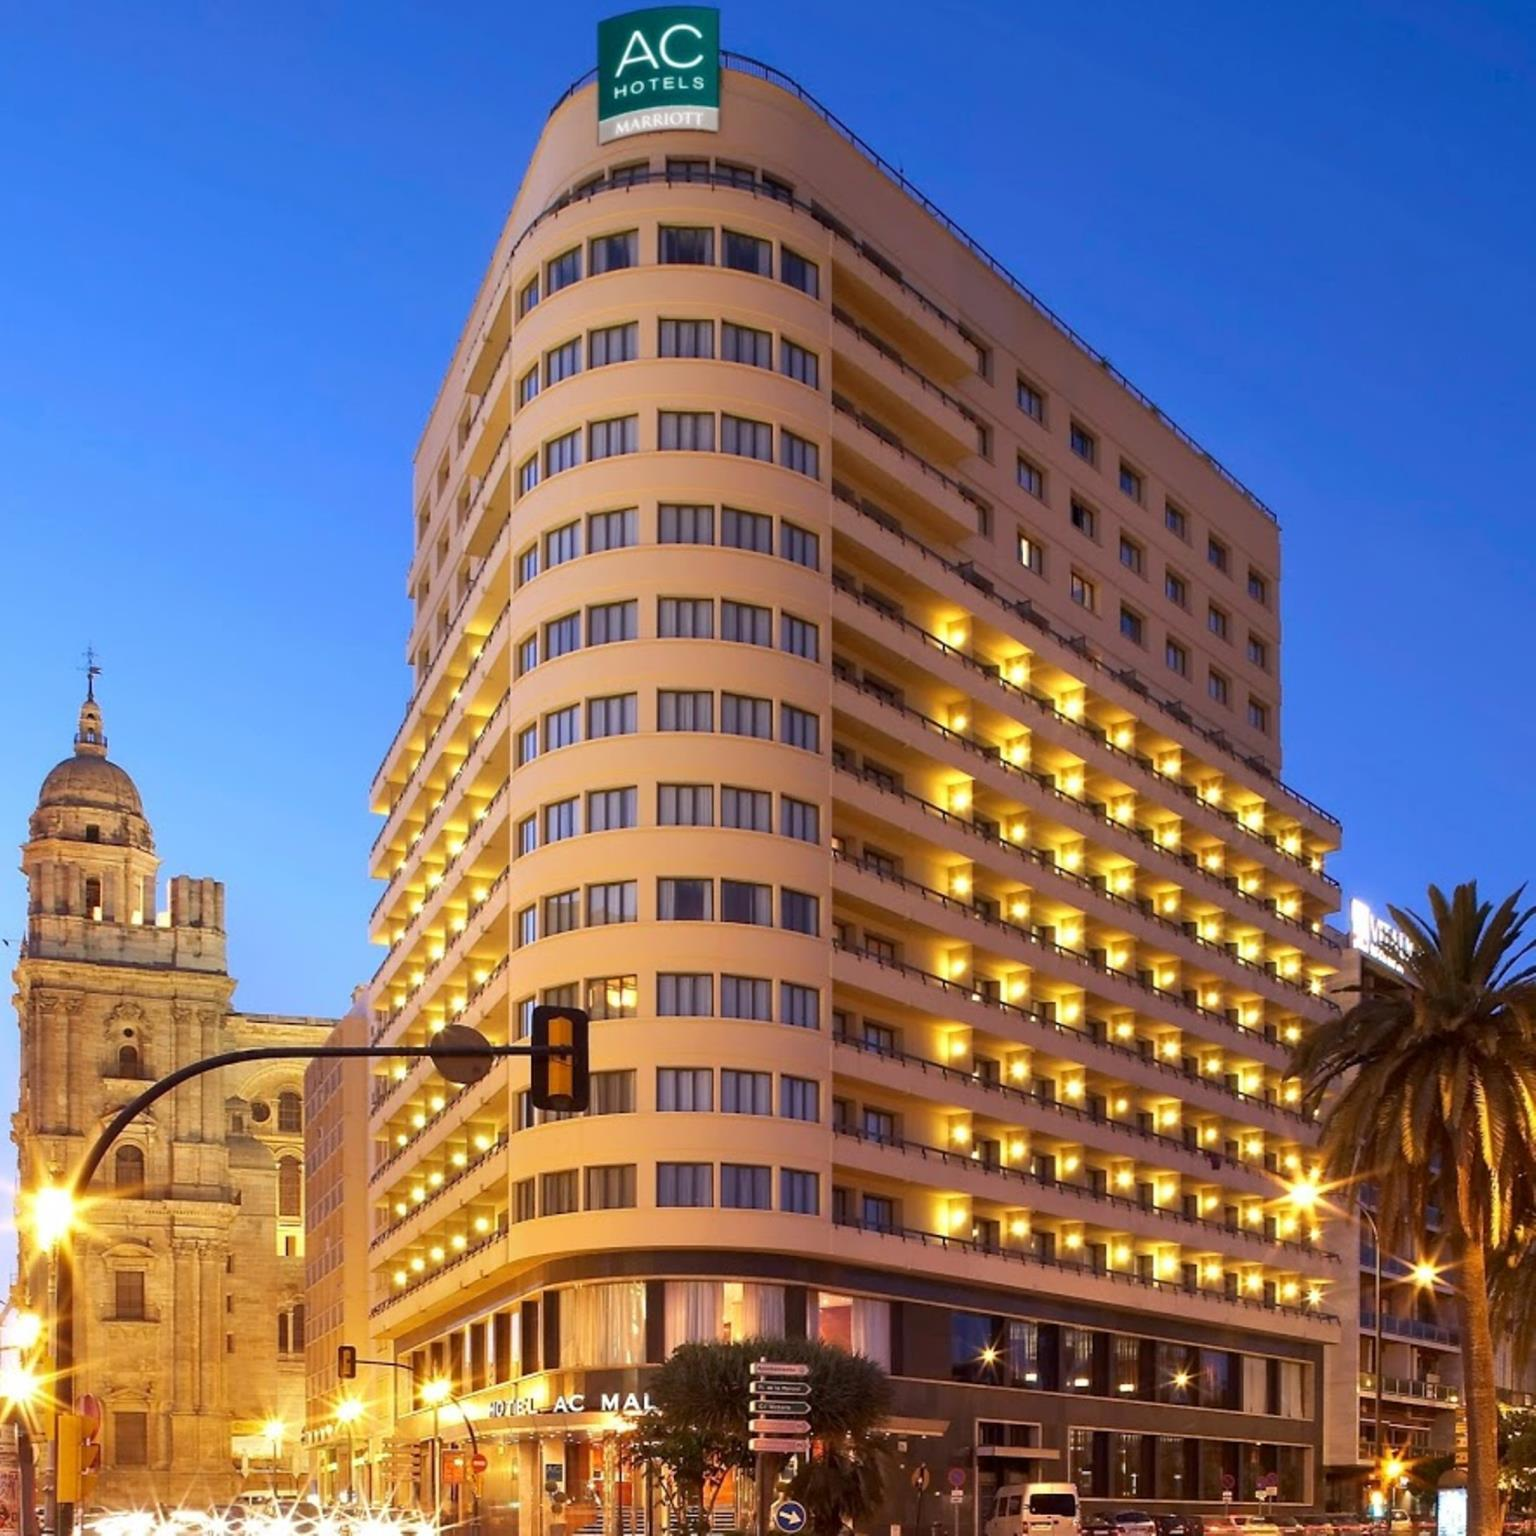 Ac hotel malaga palacio by marriott in spain europe for Hotels malaga